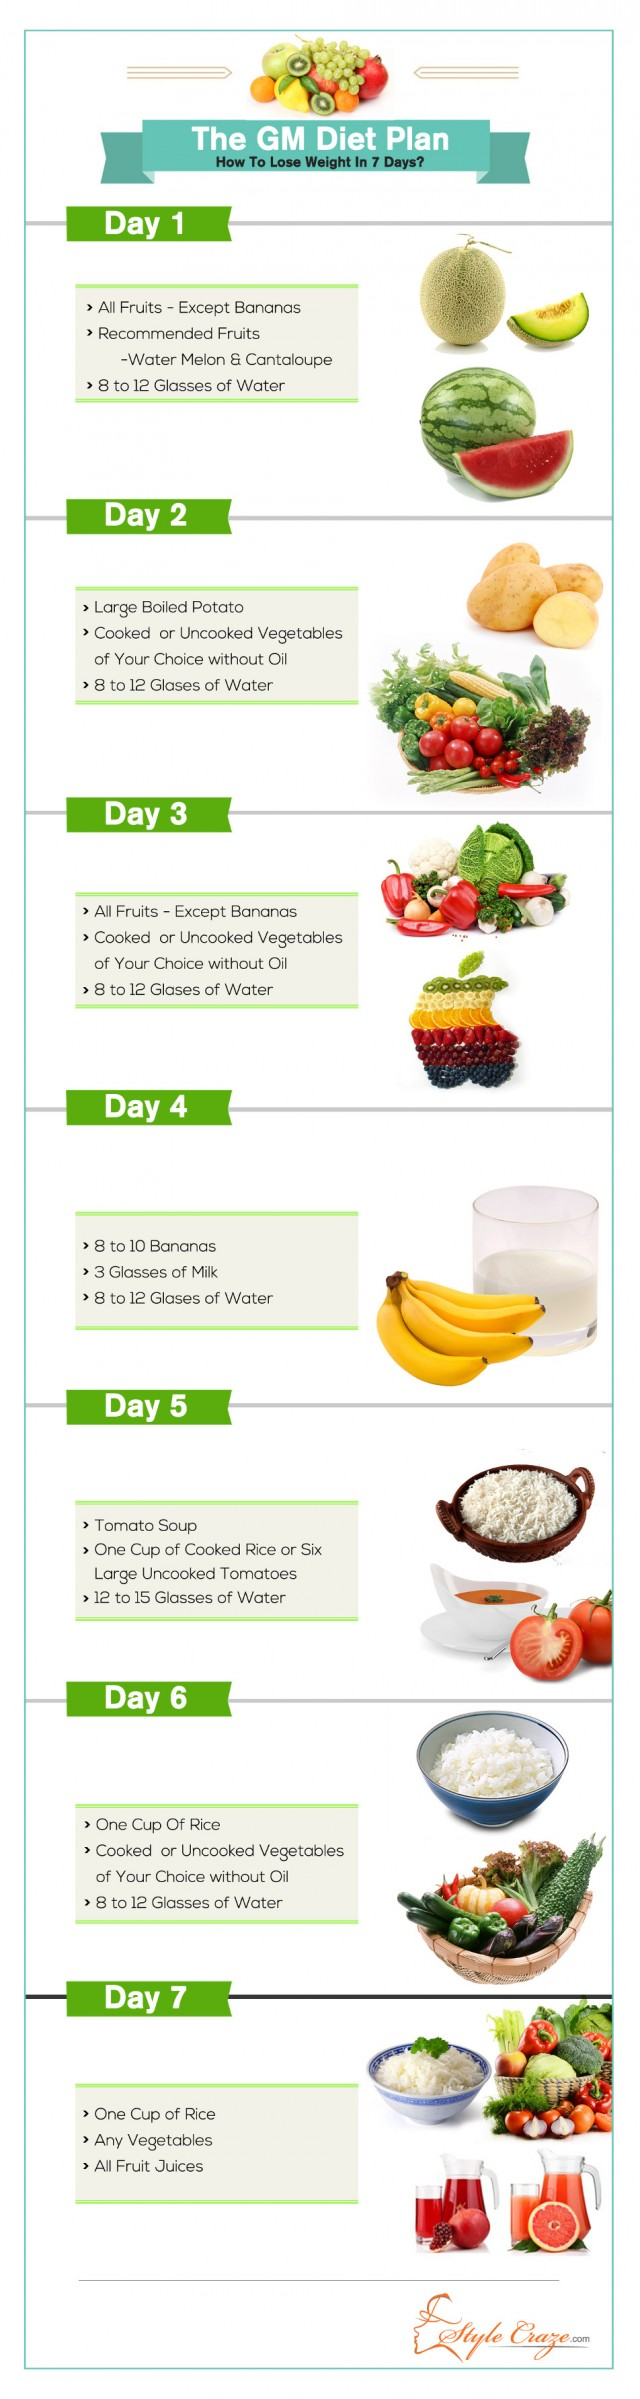 The-GM-Diet-Plan-8.1